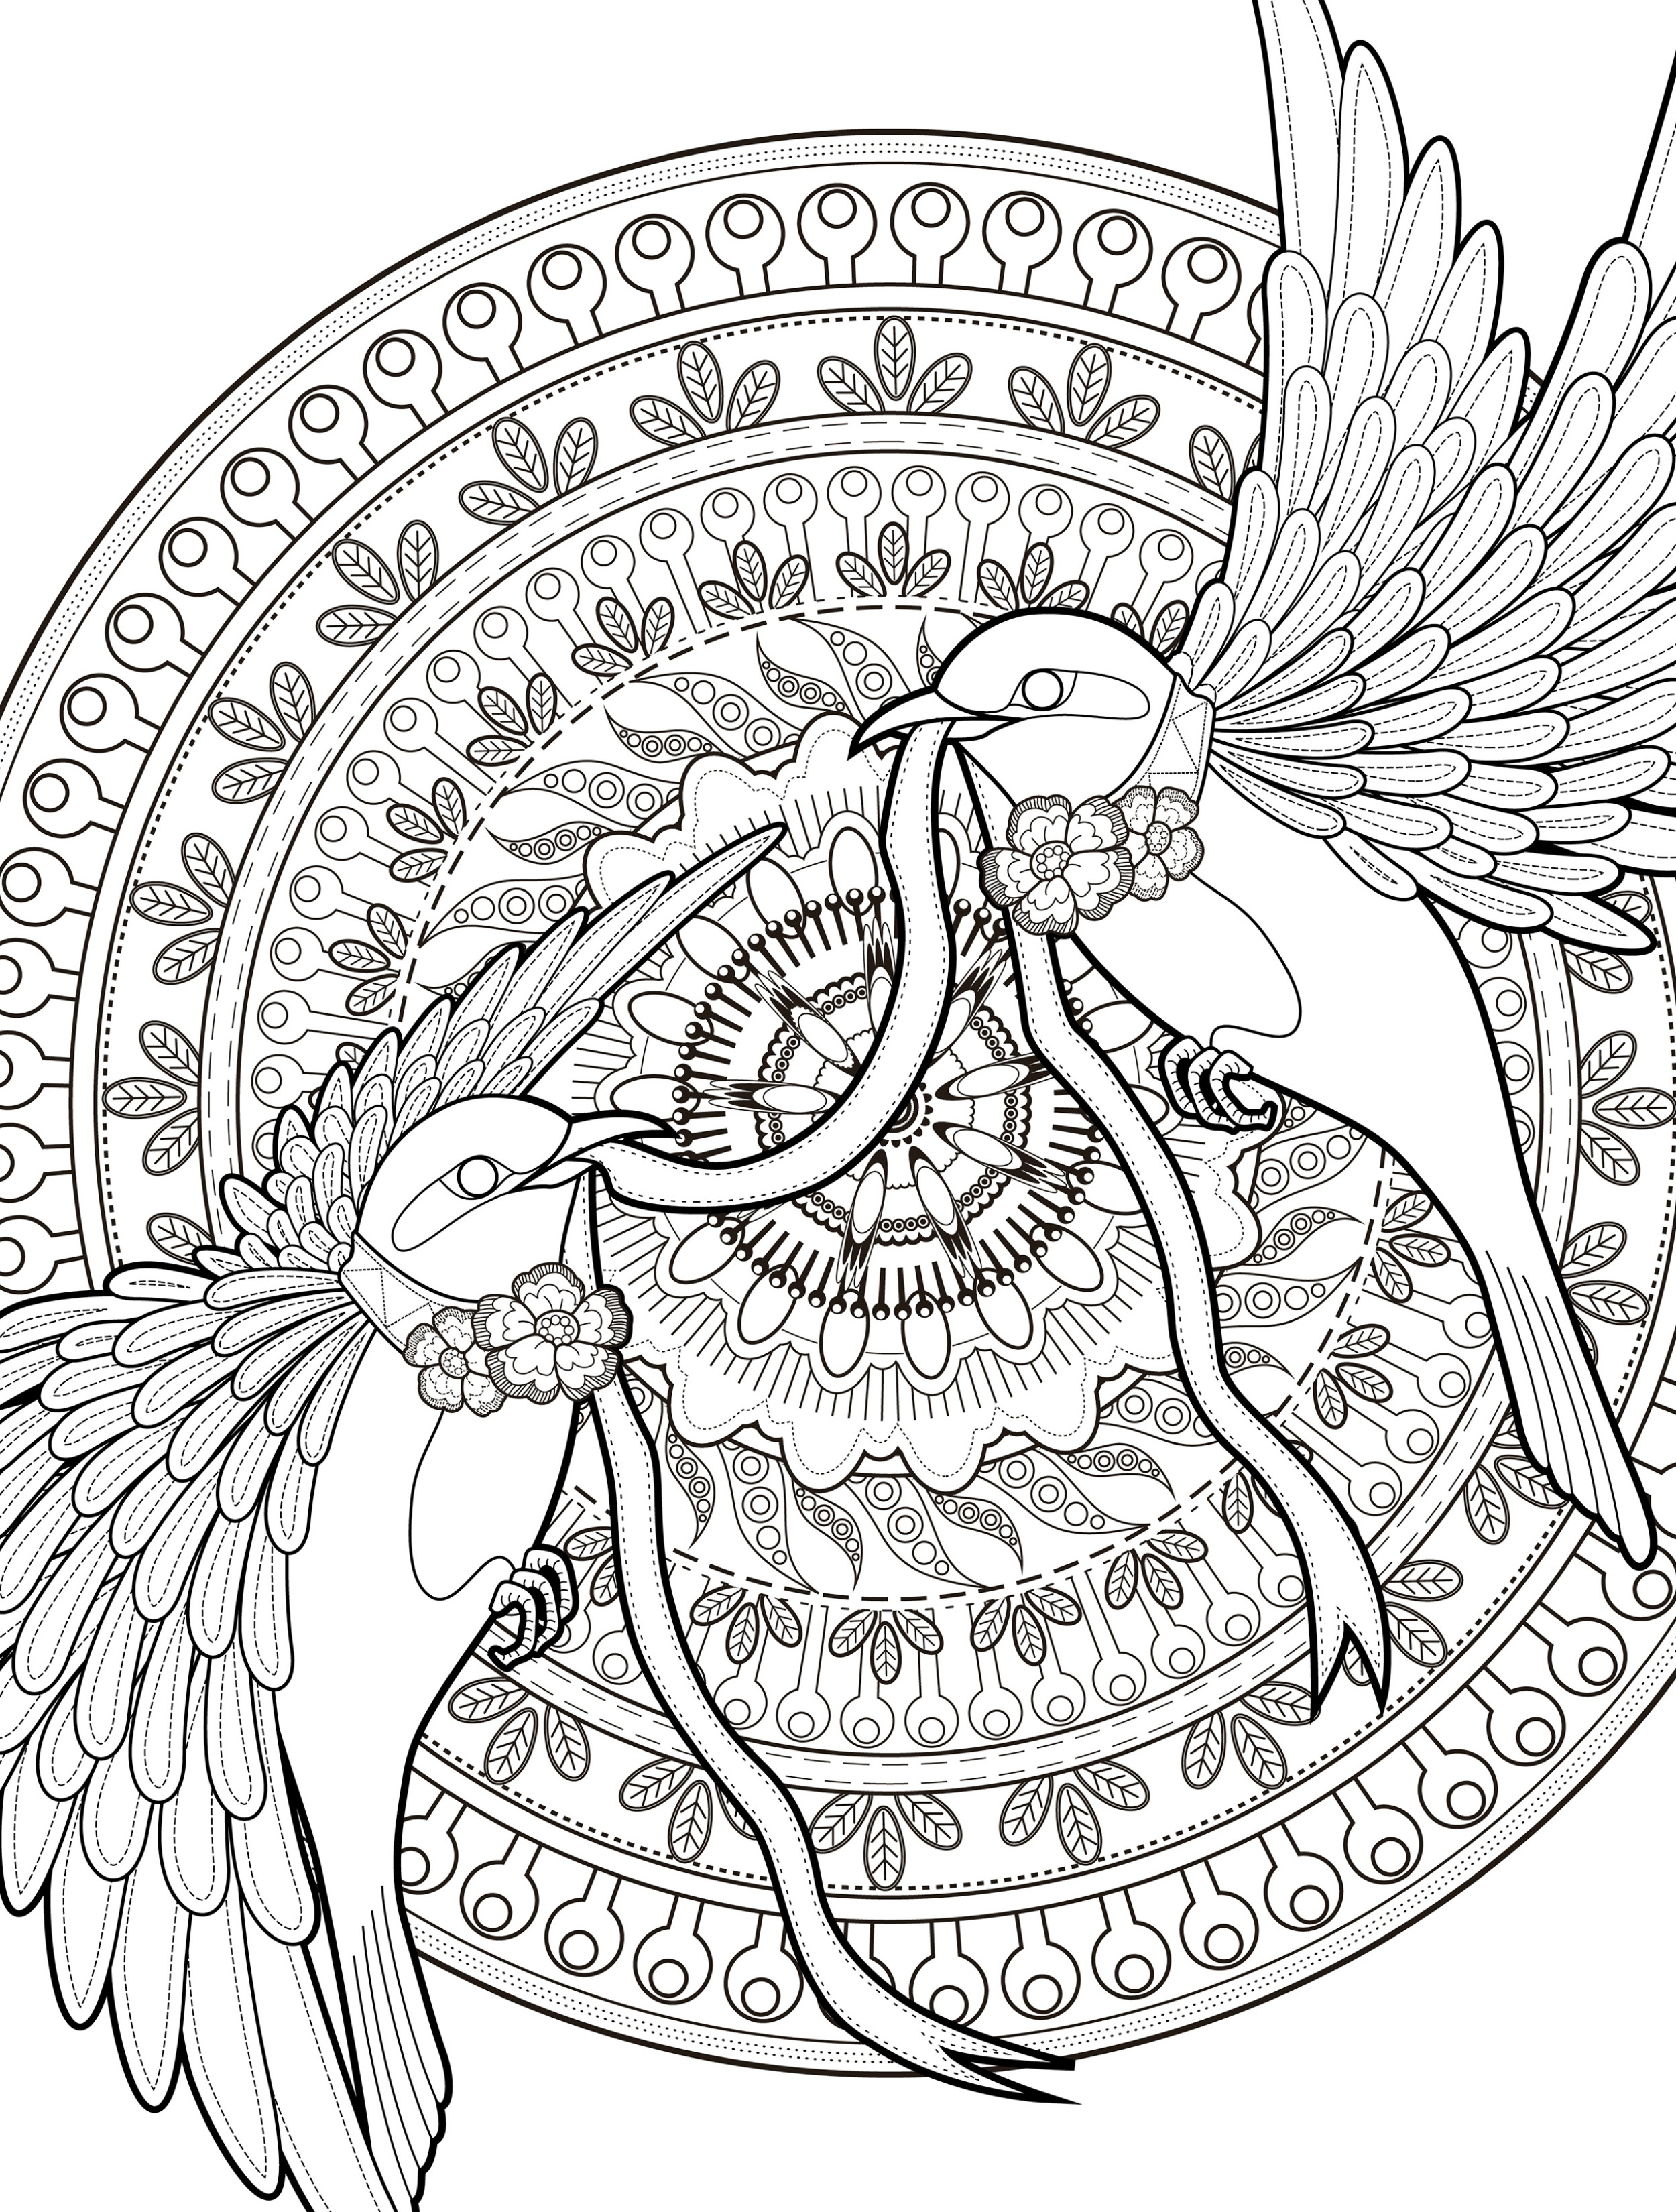 Adult Coloring Pages 24 More Free Printable Adult Coloring Pages Page 24 Of 25 Nerdy